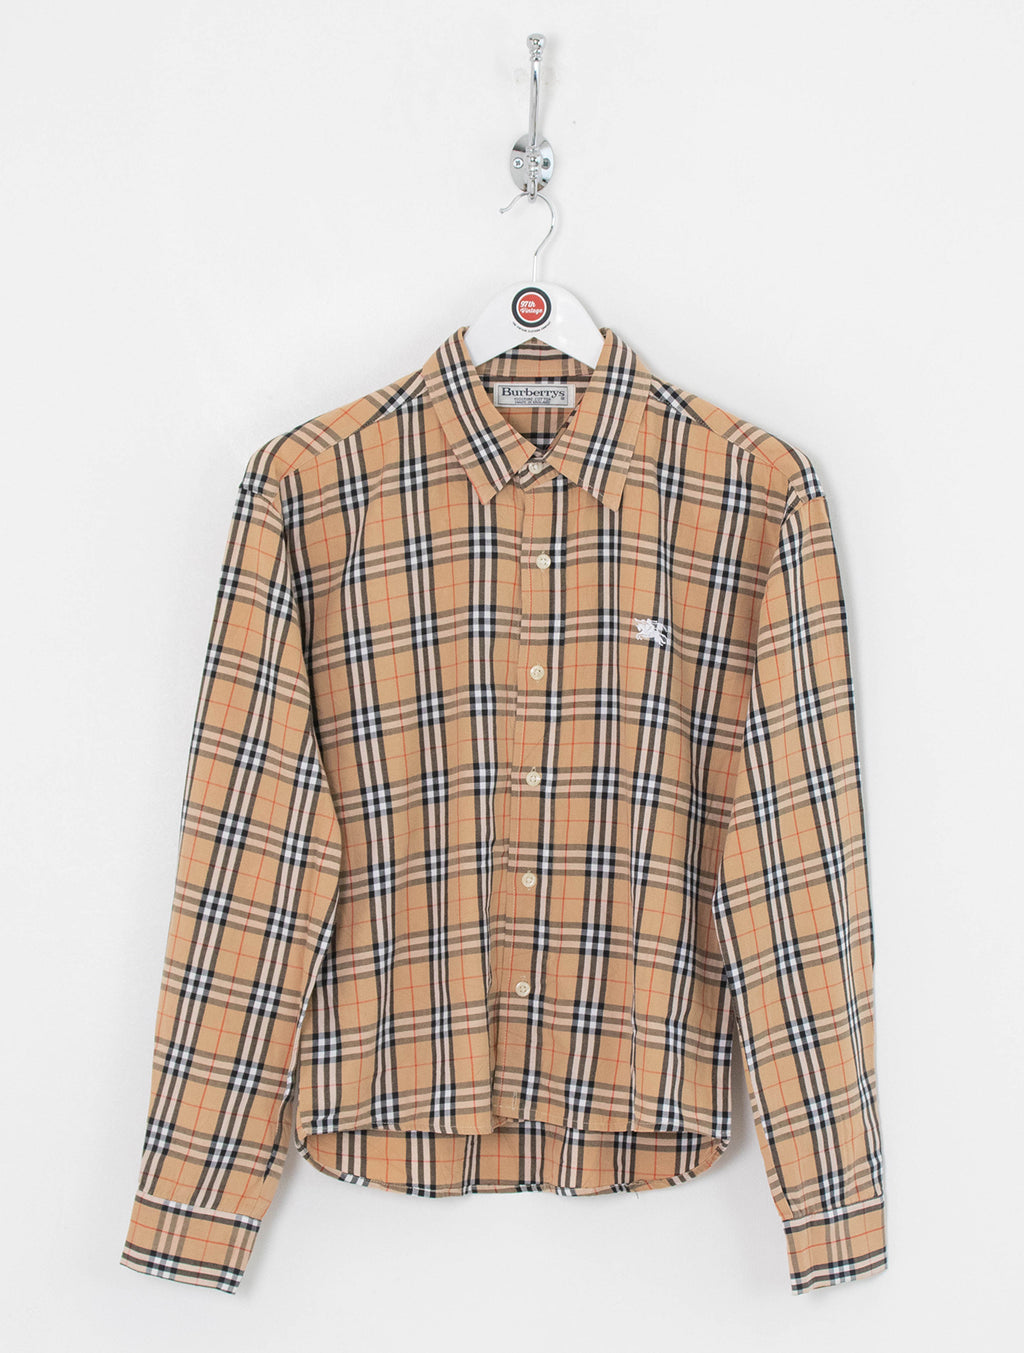 Burberry Shirt (XS)